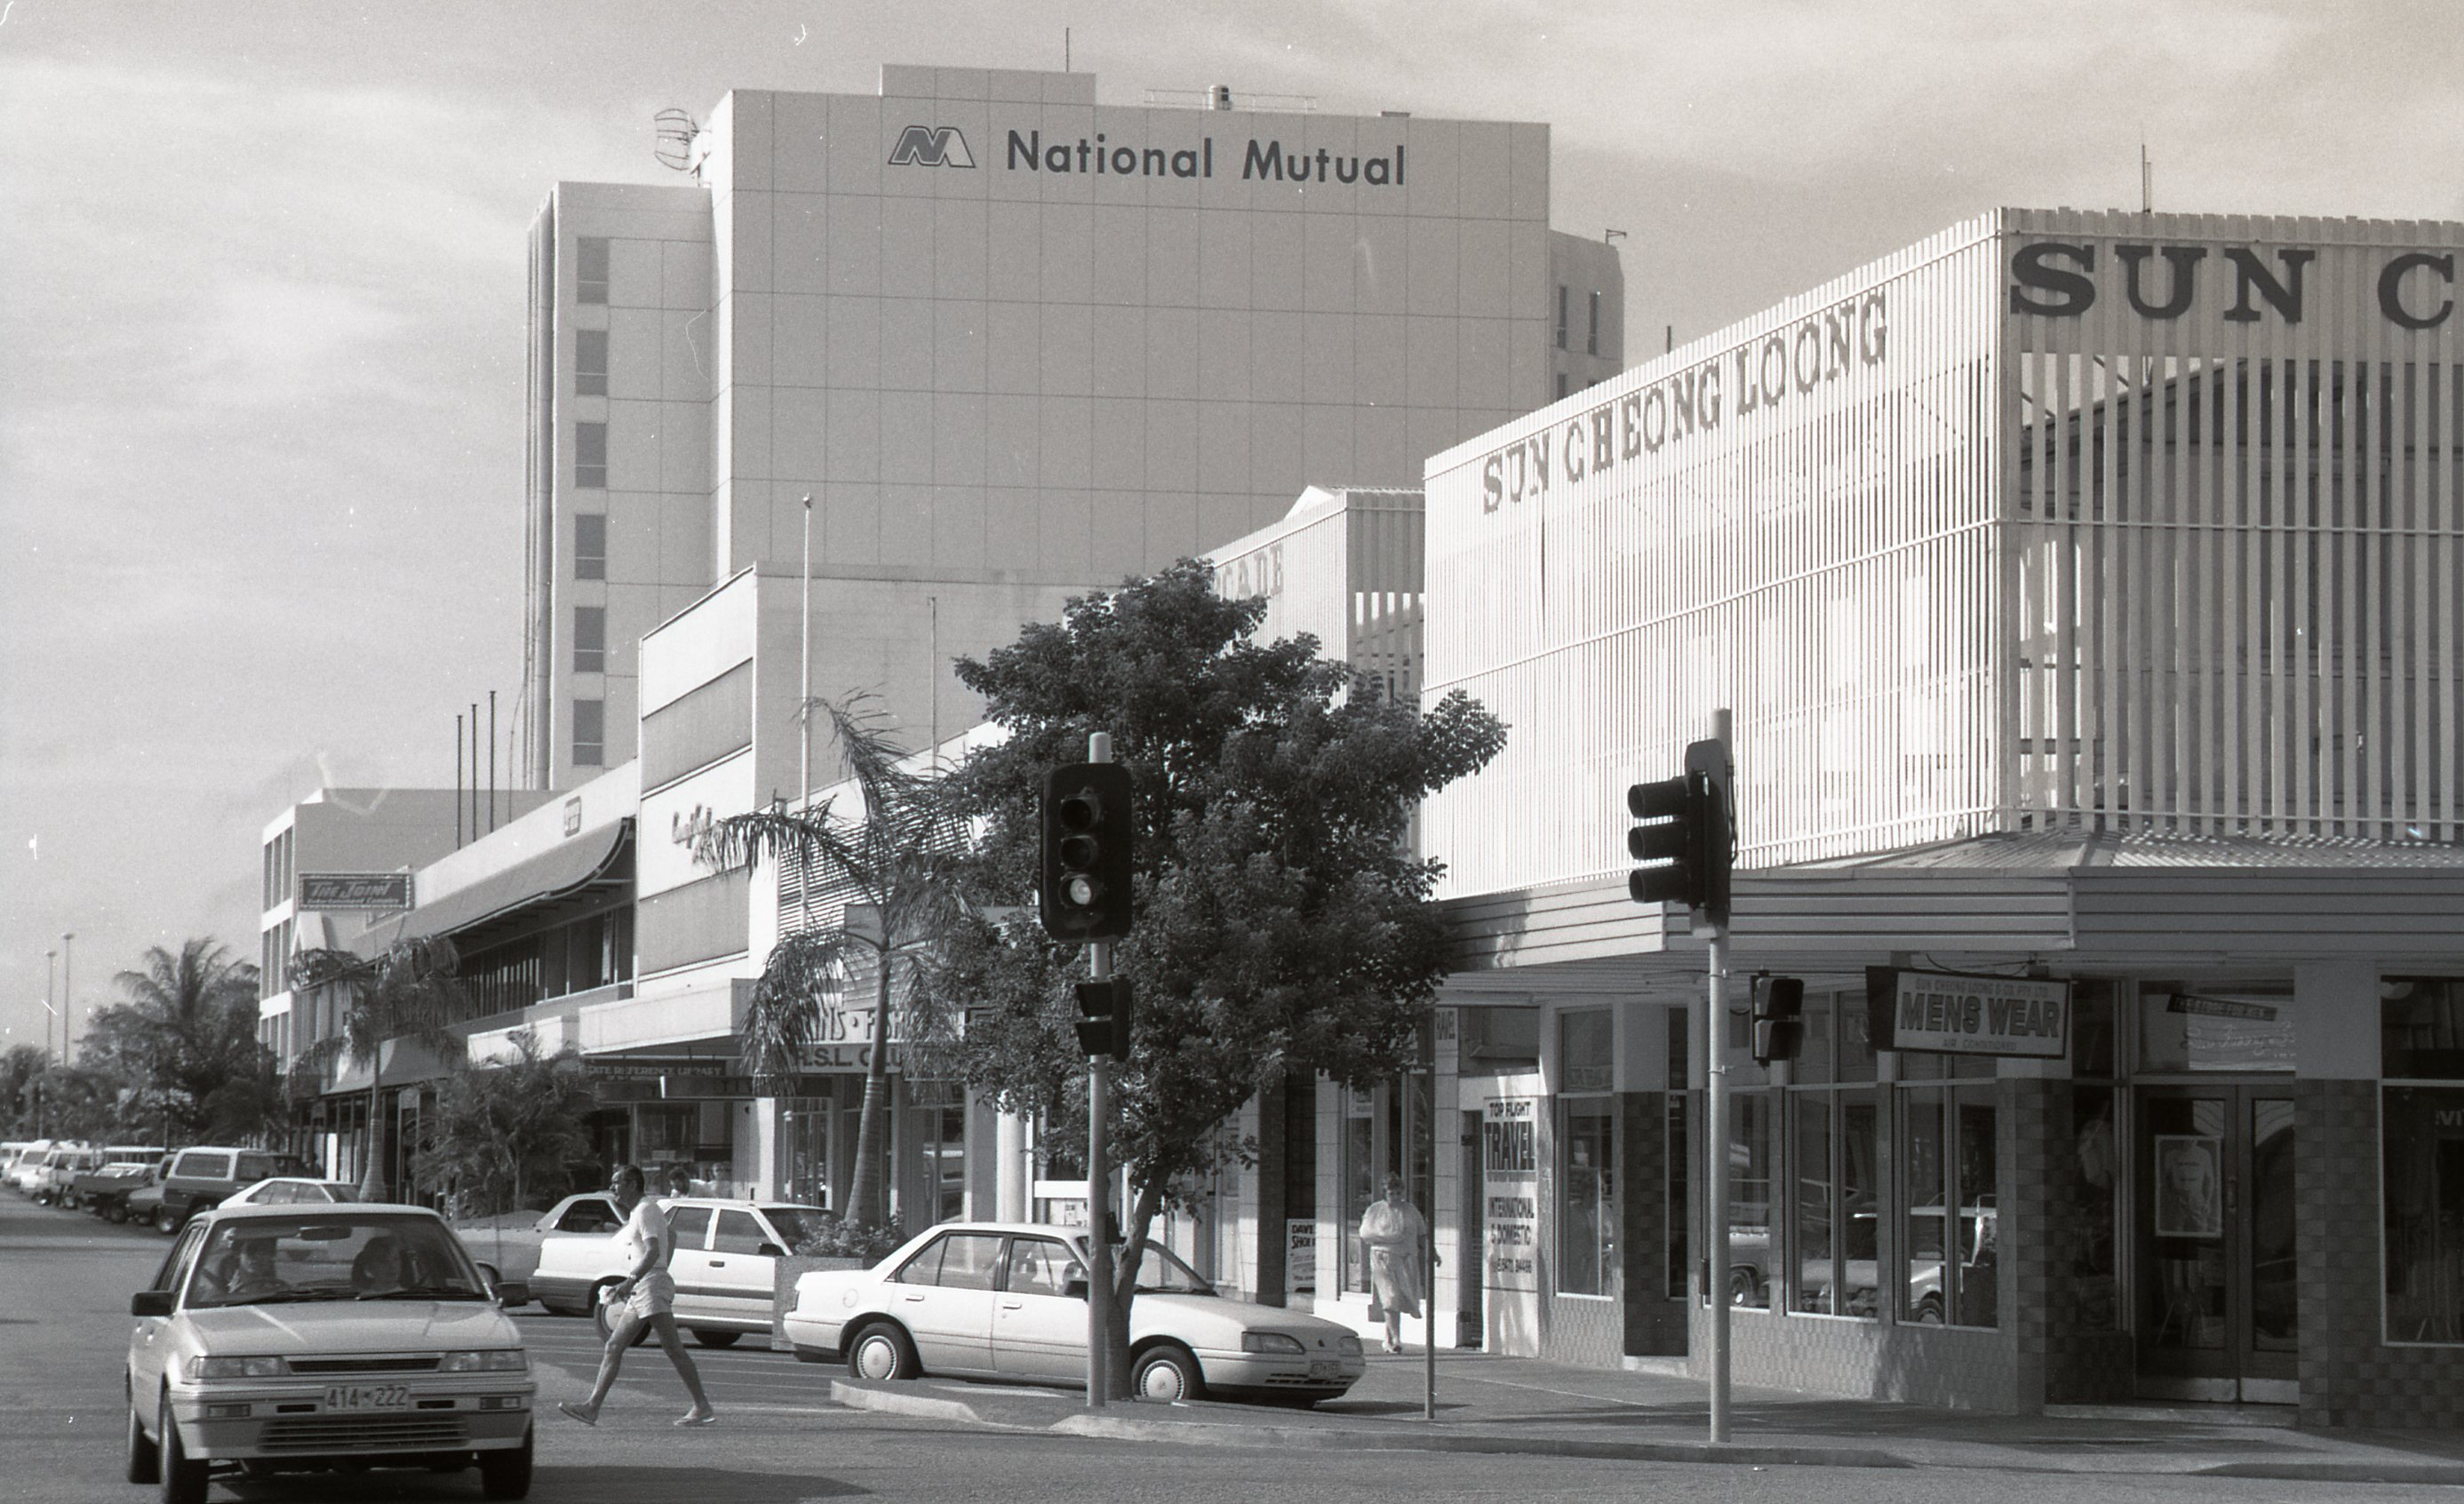 Corner of Cavenagh and Knuckey Streets, 19 April 1989<br />Image courtesy of Library & Archives NT,  Department of the Chief Minister, NTRS 3823 P1, Box 11, BW2811, Image 10